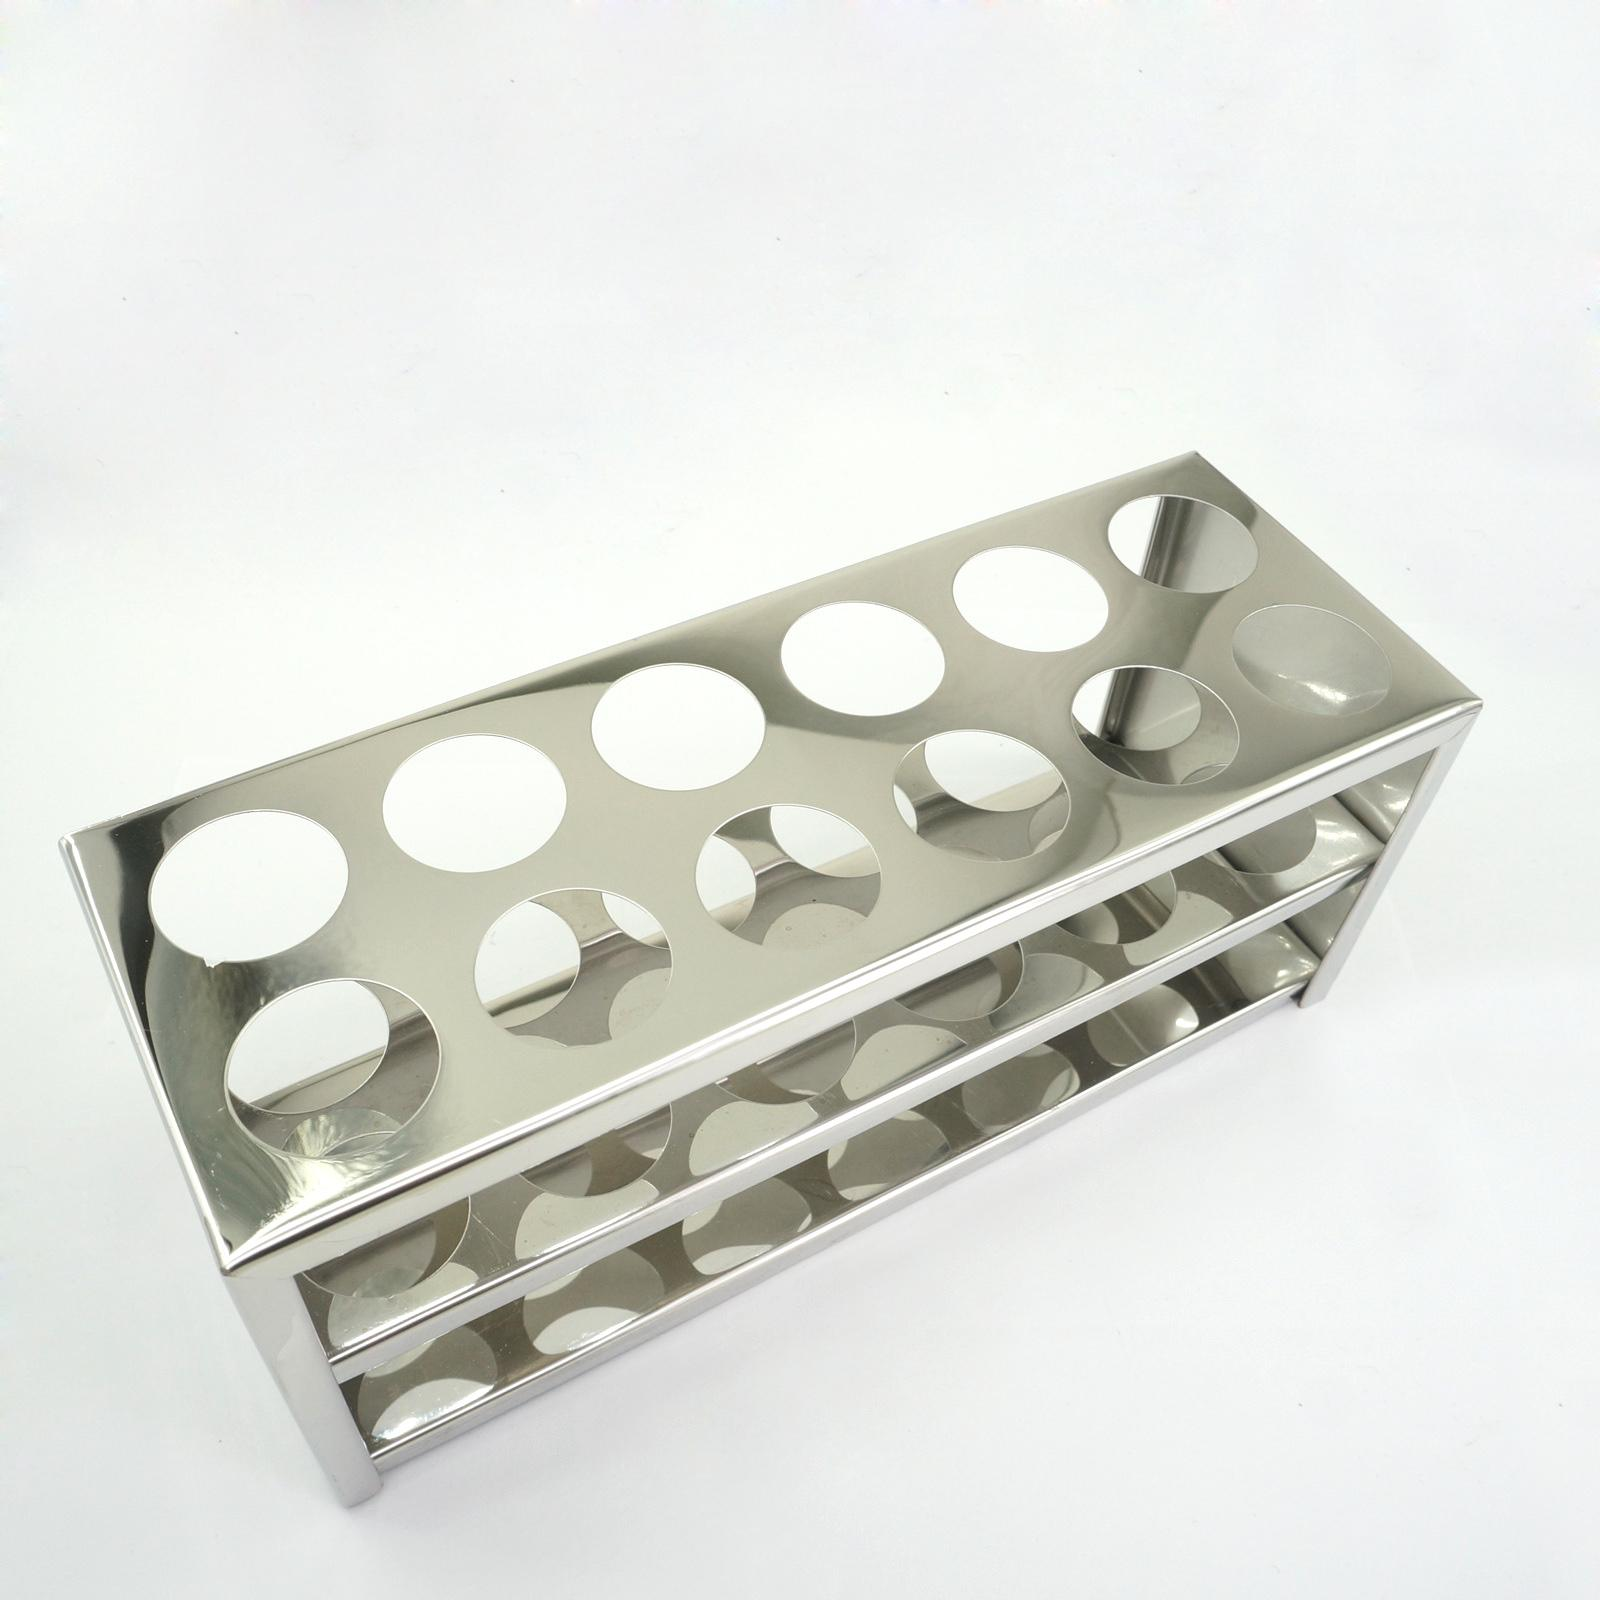 30mm Diam x 12 Holes Stainless Steel Test Tube Rack Holder Storage Lab Stand 13mm 40 holes wire professional test stainless steel tube rack suitable for test tube of diameter 10mm 11mm 12mm 13mm